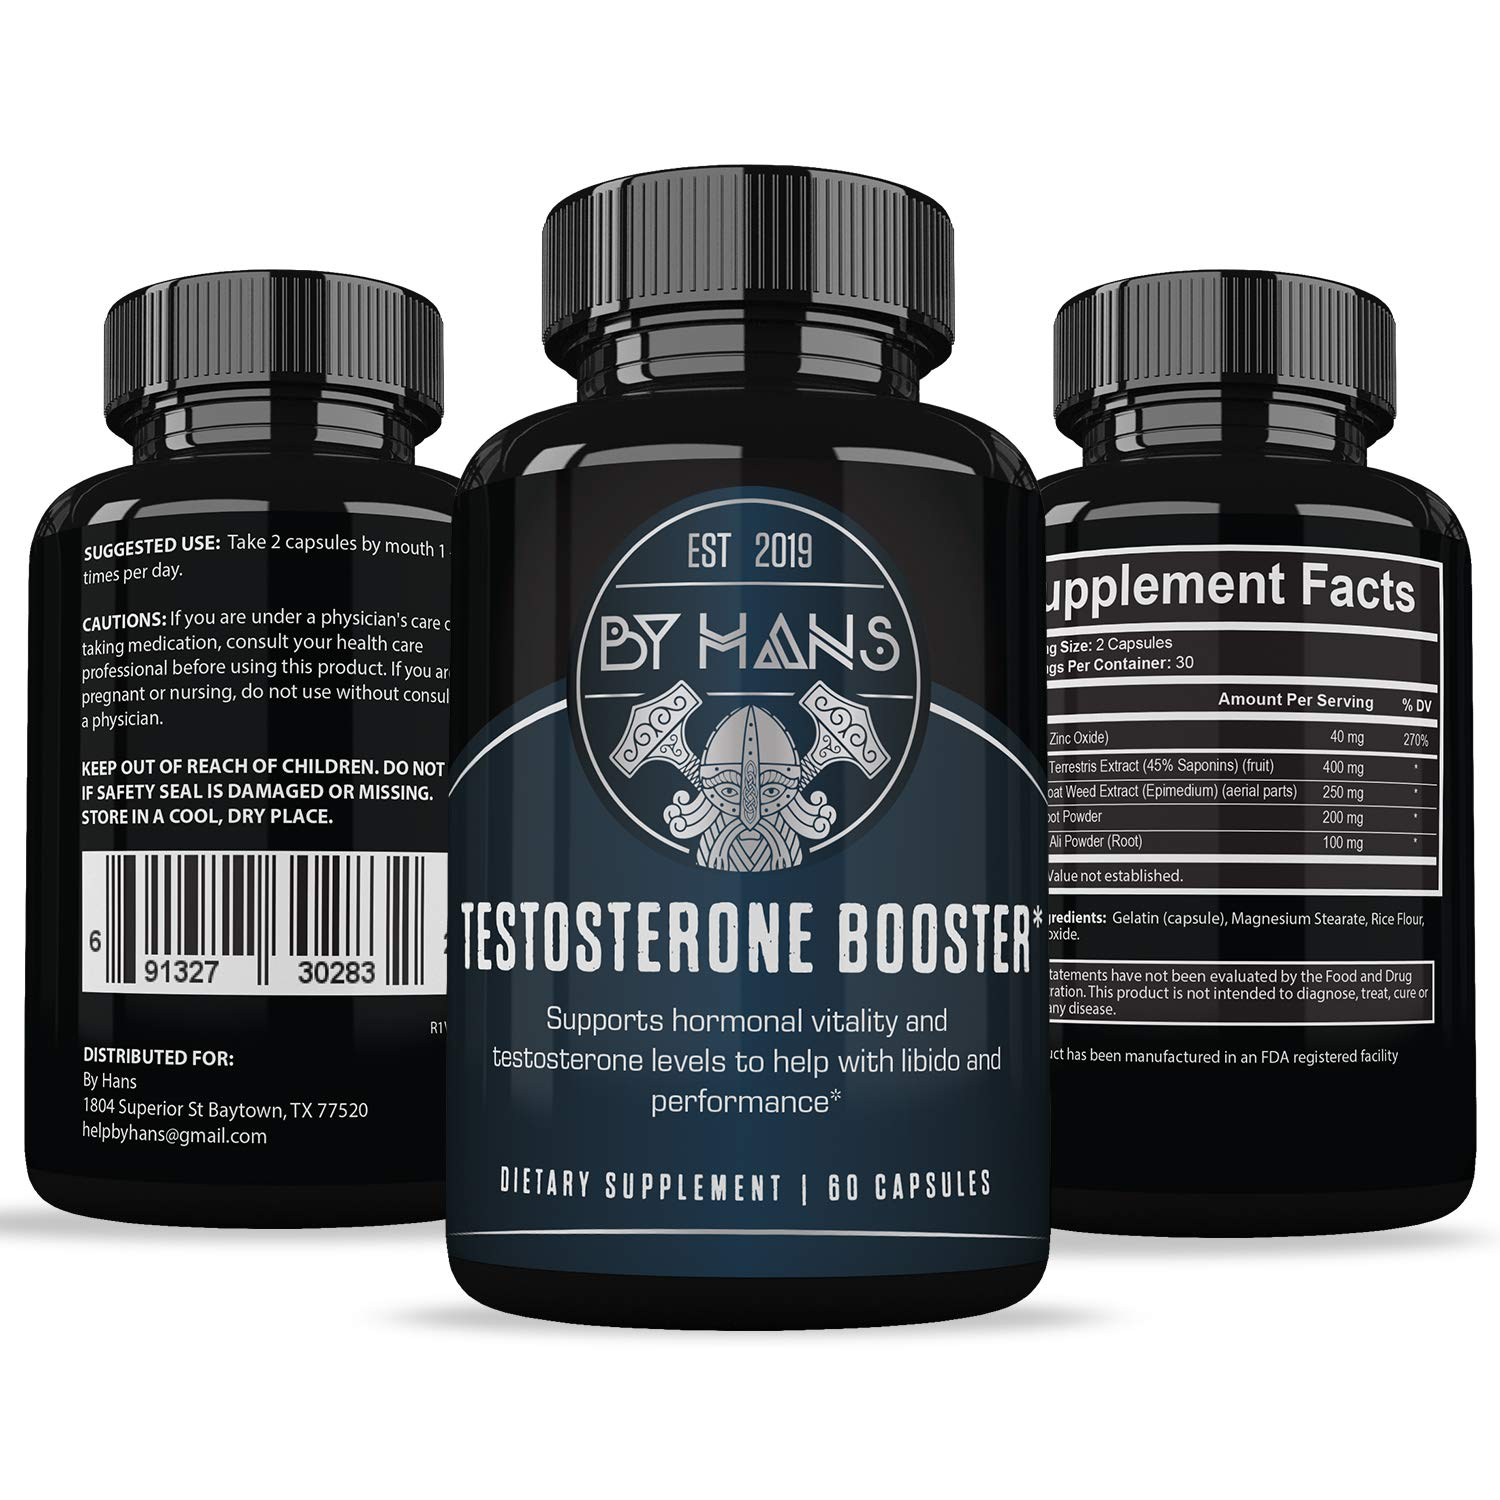 Testosterone Booster for Men - Naturally Increase Stamina & Libido - Endurance & Strength Booster - Burn Fat & Build Lean Muscle - 60 Capsules by By Hans (Image #4)